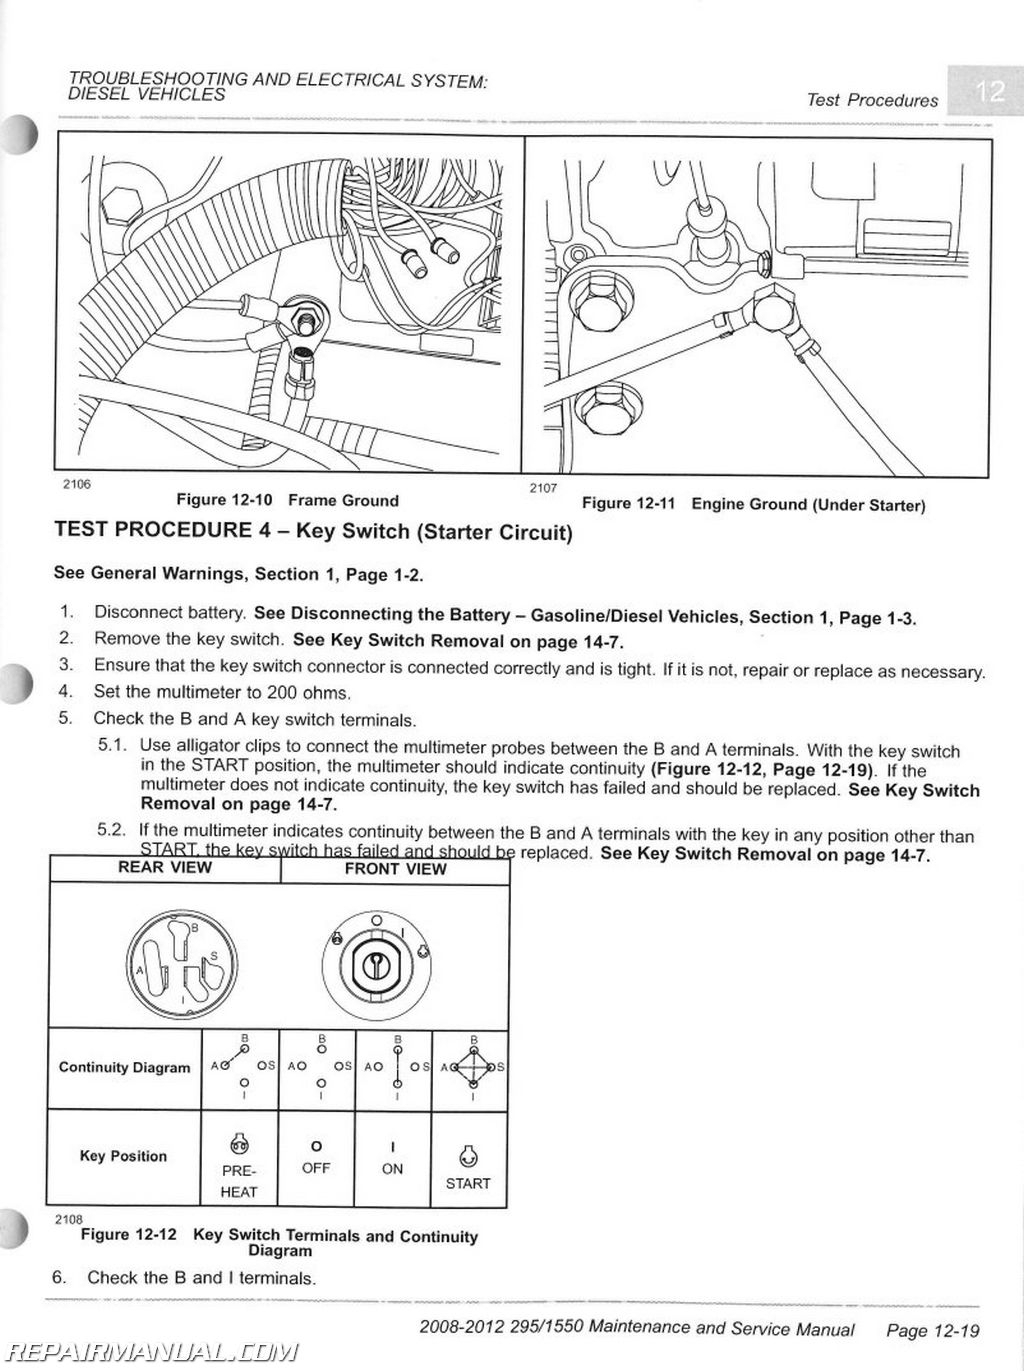 ingersoll rand club car wiring diagram in luxury parts 43 in inside club car golf cart parts diagram club car golf cart parts diagram automotive parts diagram images ingersoll rand club car wiring diagram at letsshop.co